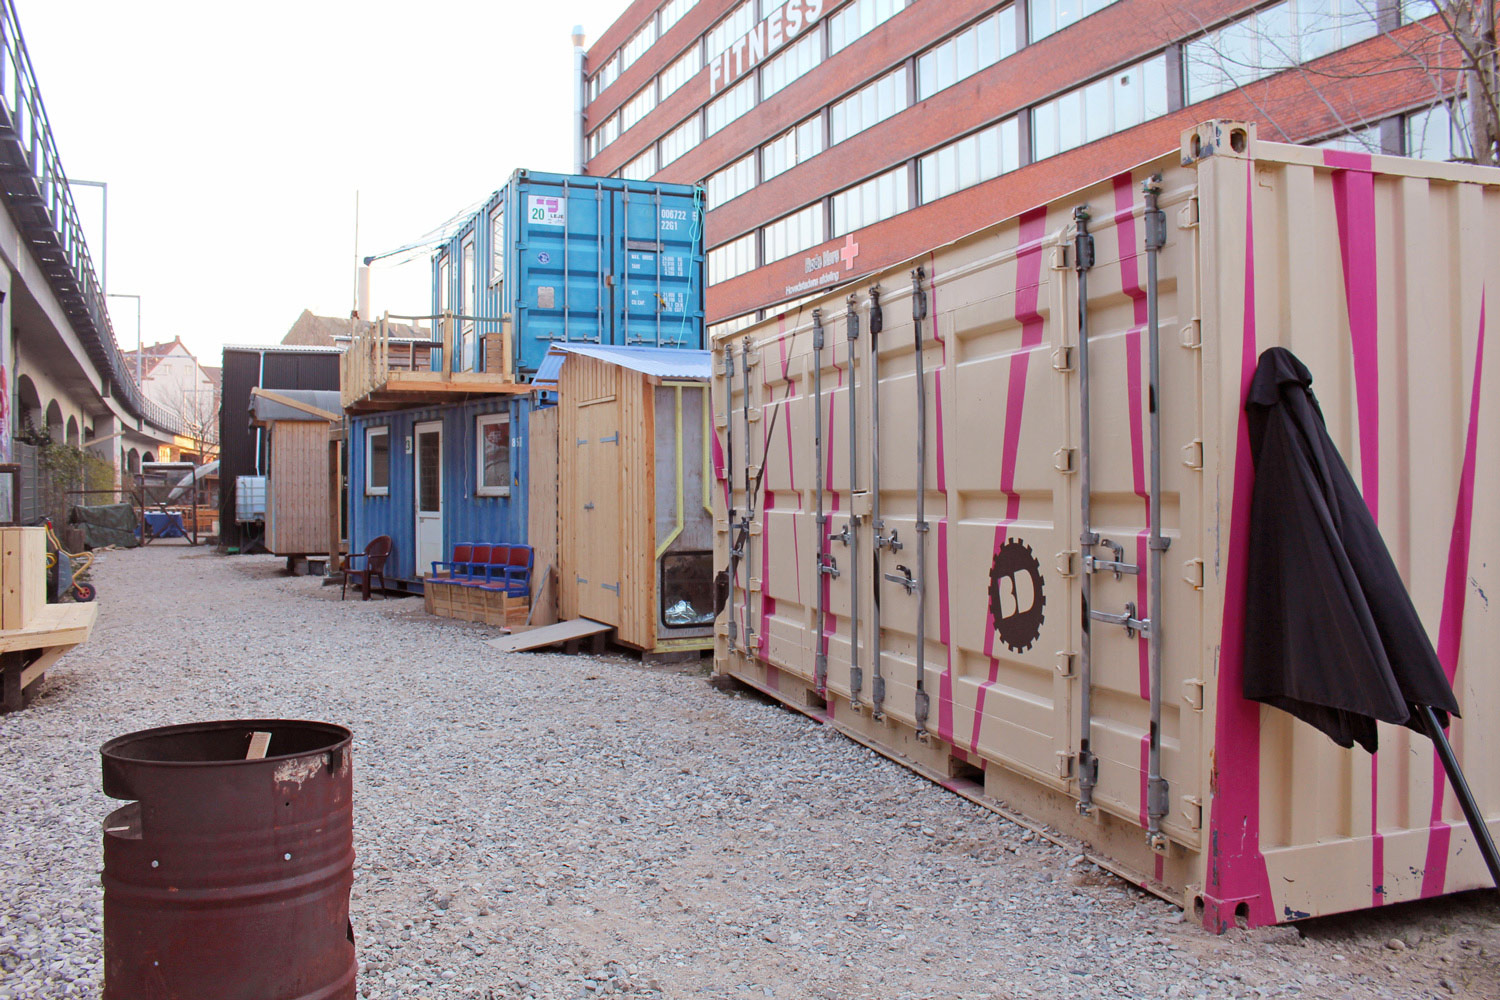 The container workshops